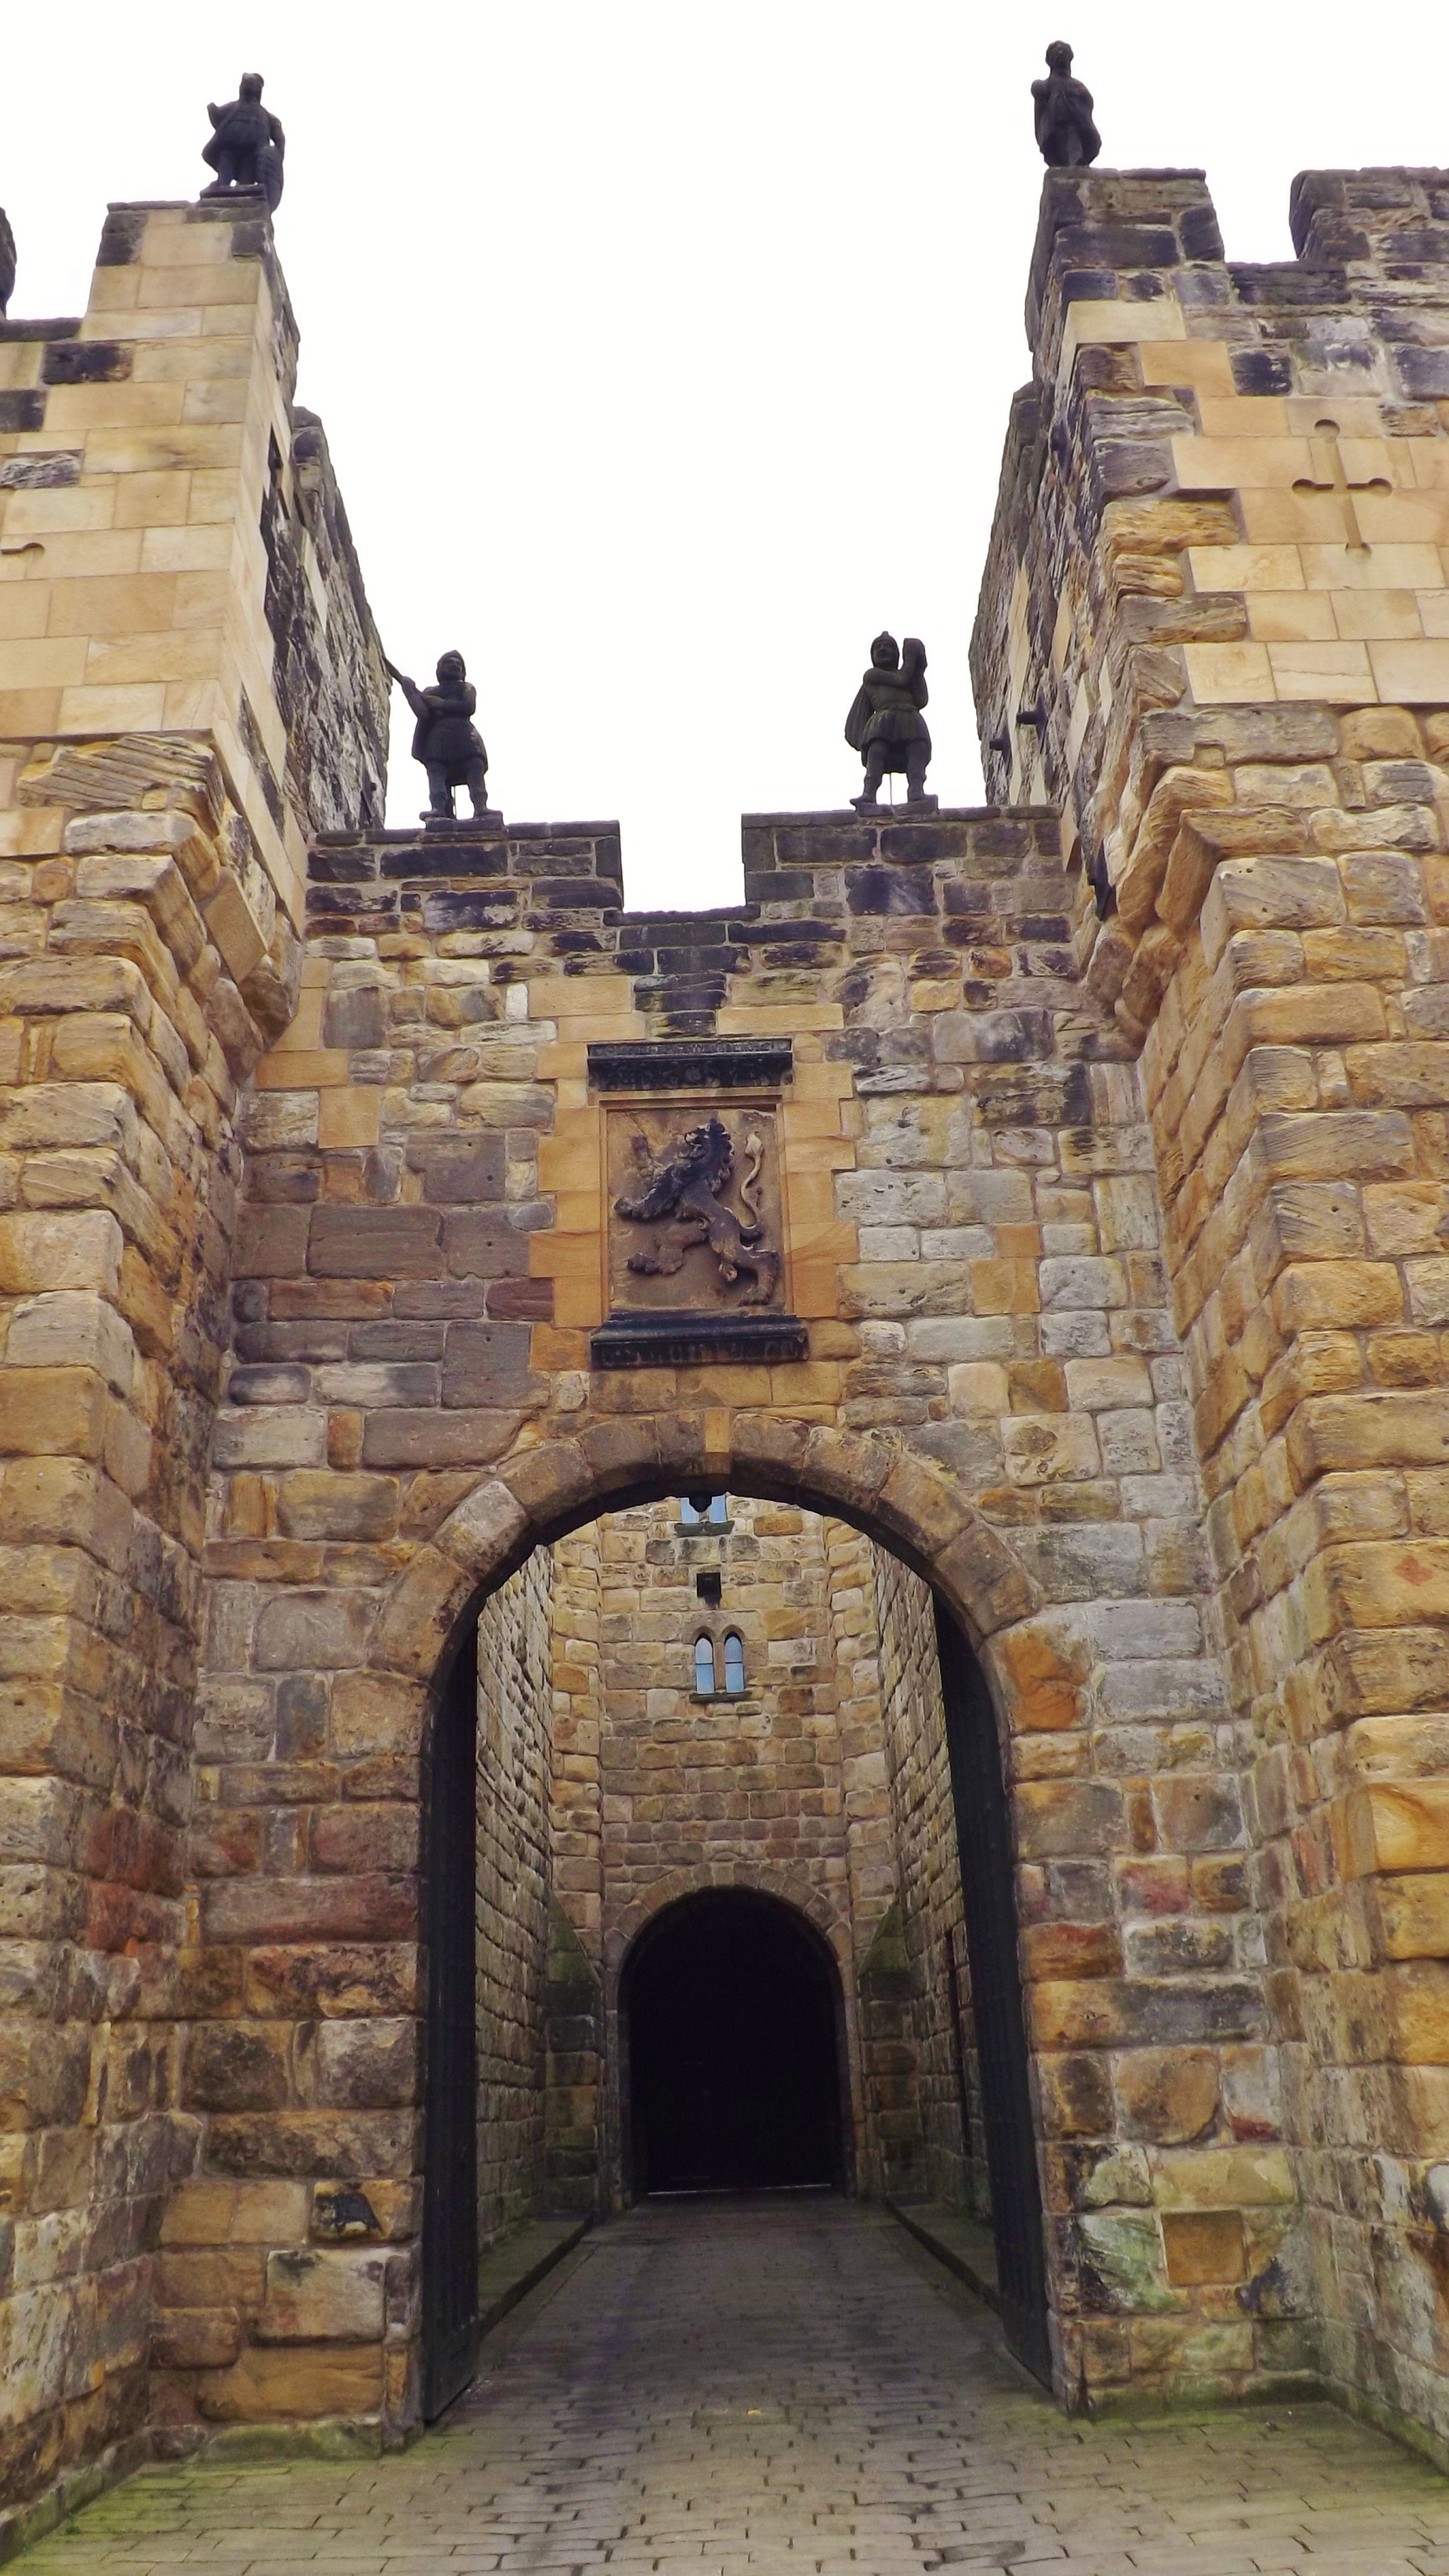 This Is The Main Entrance To Alnwick CastleNorthumberland Which Was Used In Early Harry Potter Films As Set For Hogwarts School